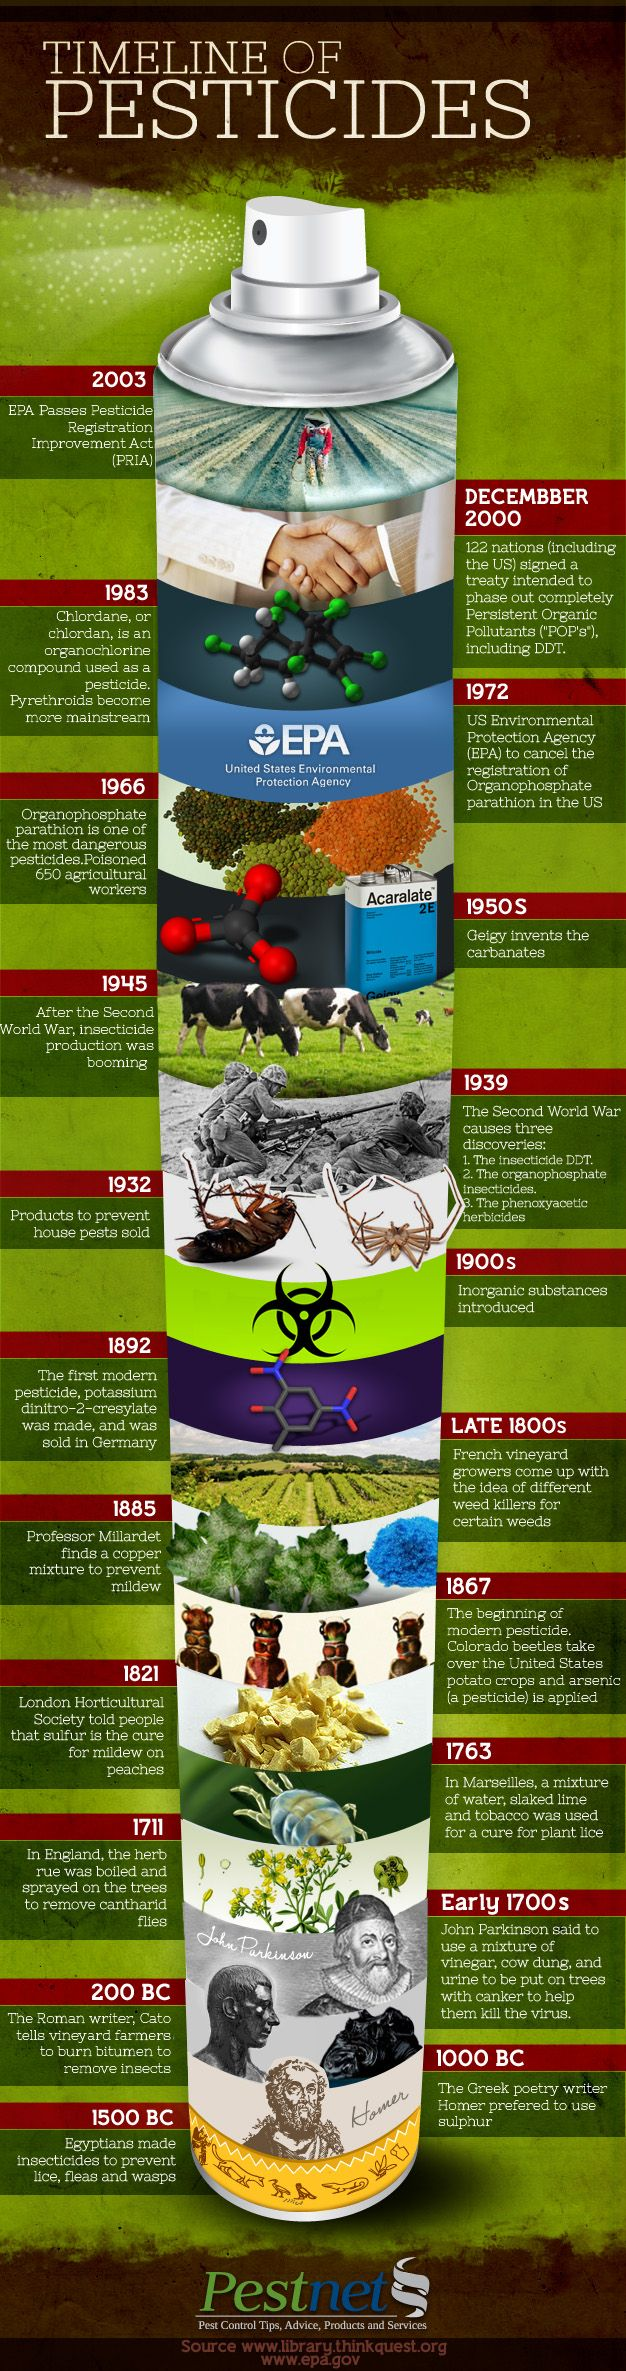 Pesticides have been used for ages. How and why? | This timeline shows how pesticides have evolved #survivalife www.survivallife.com